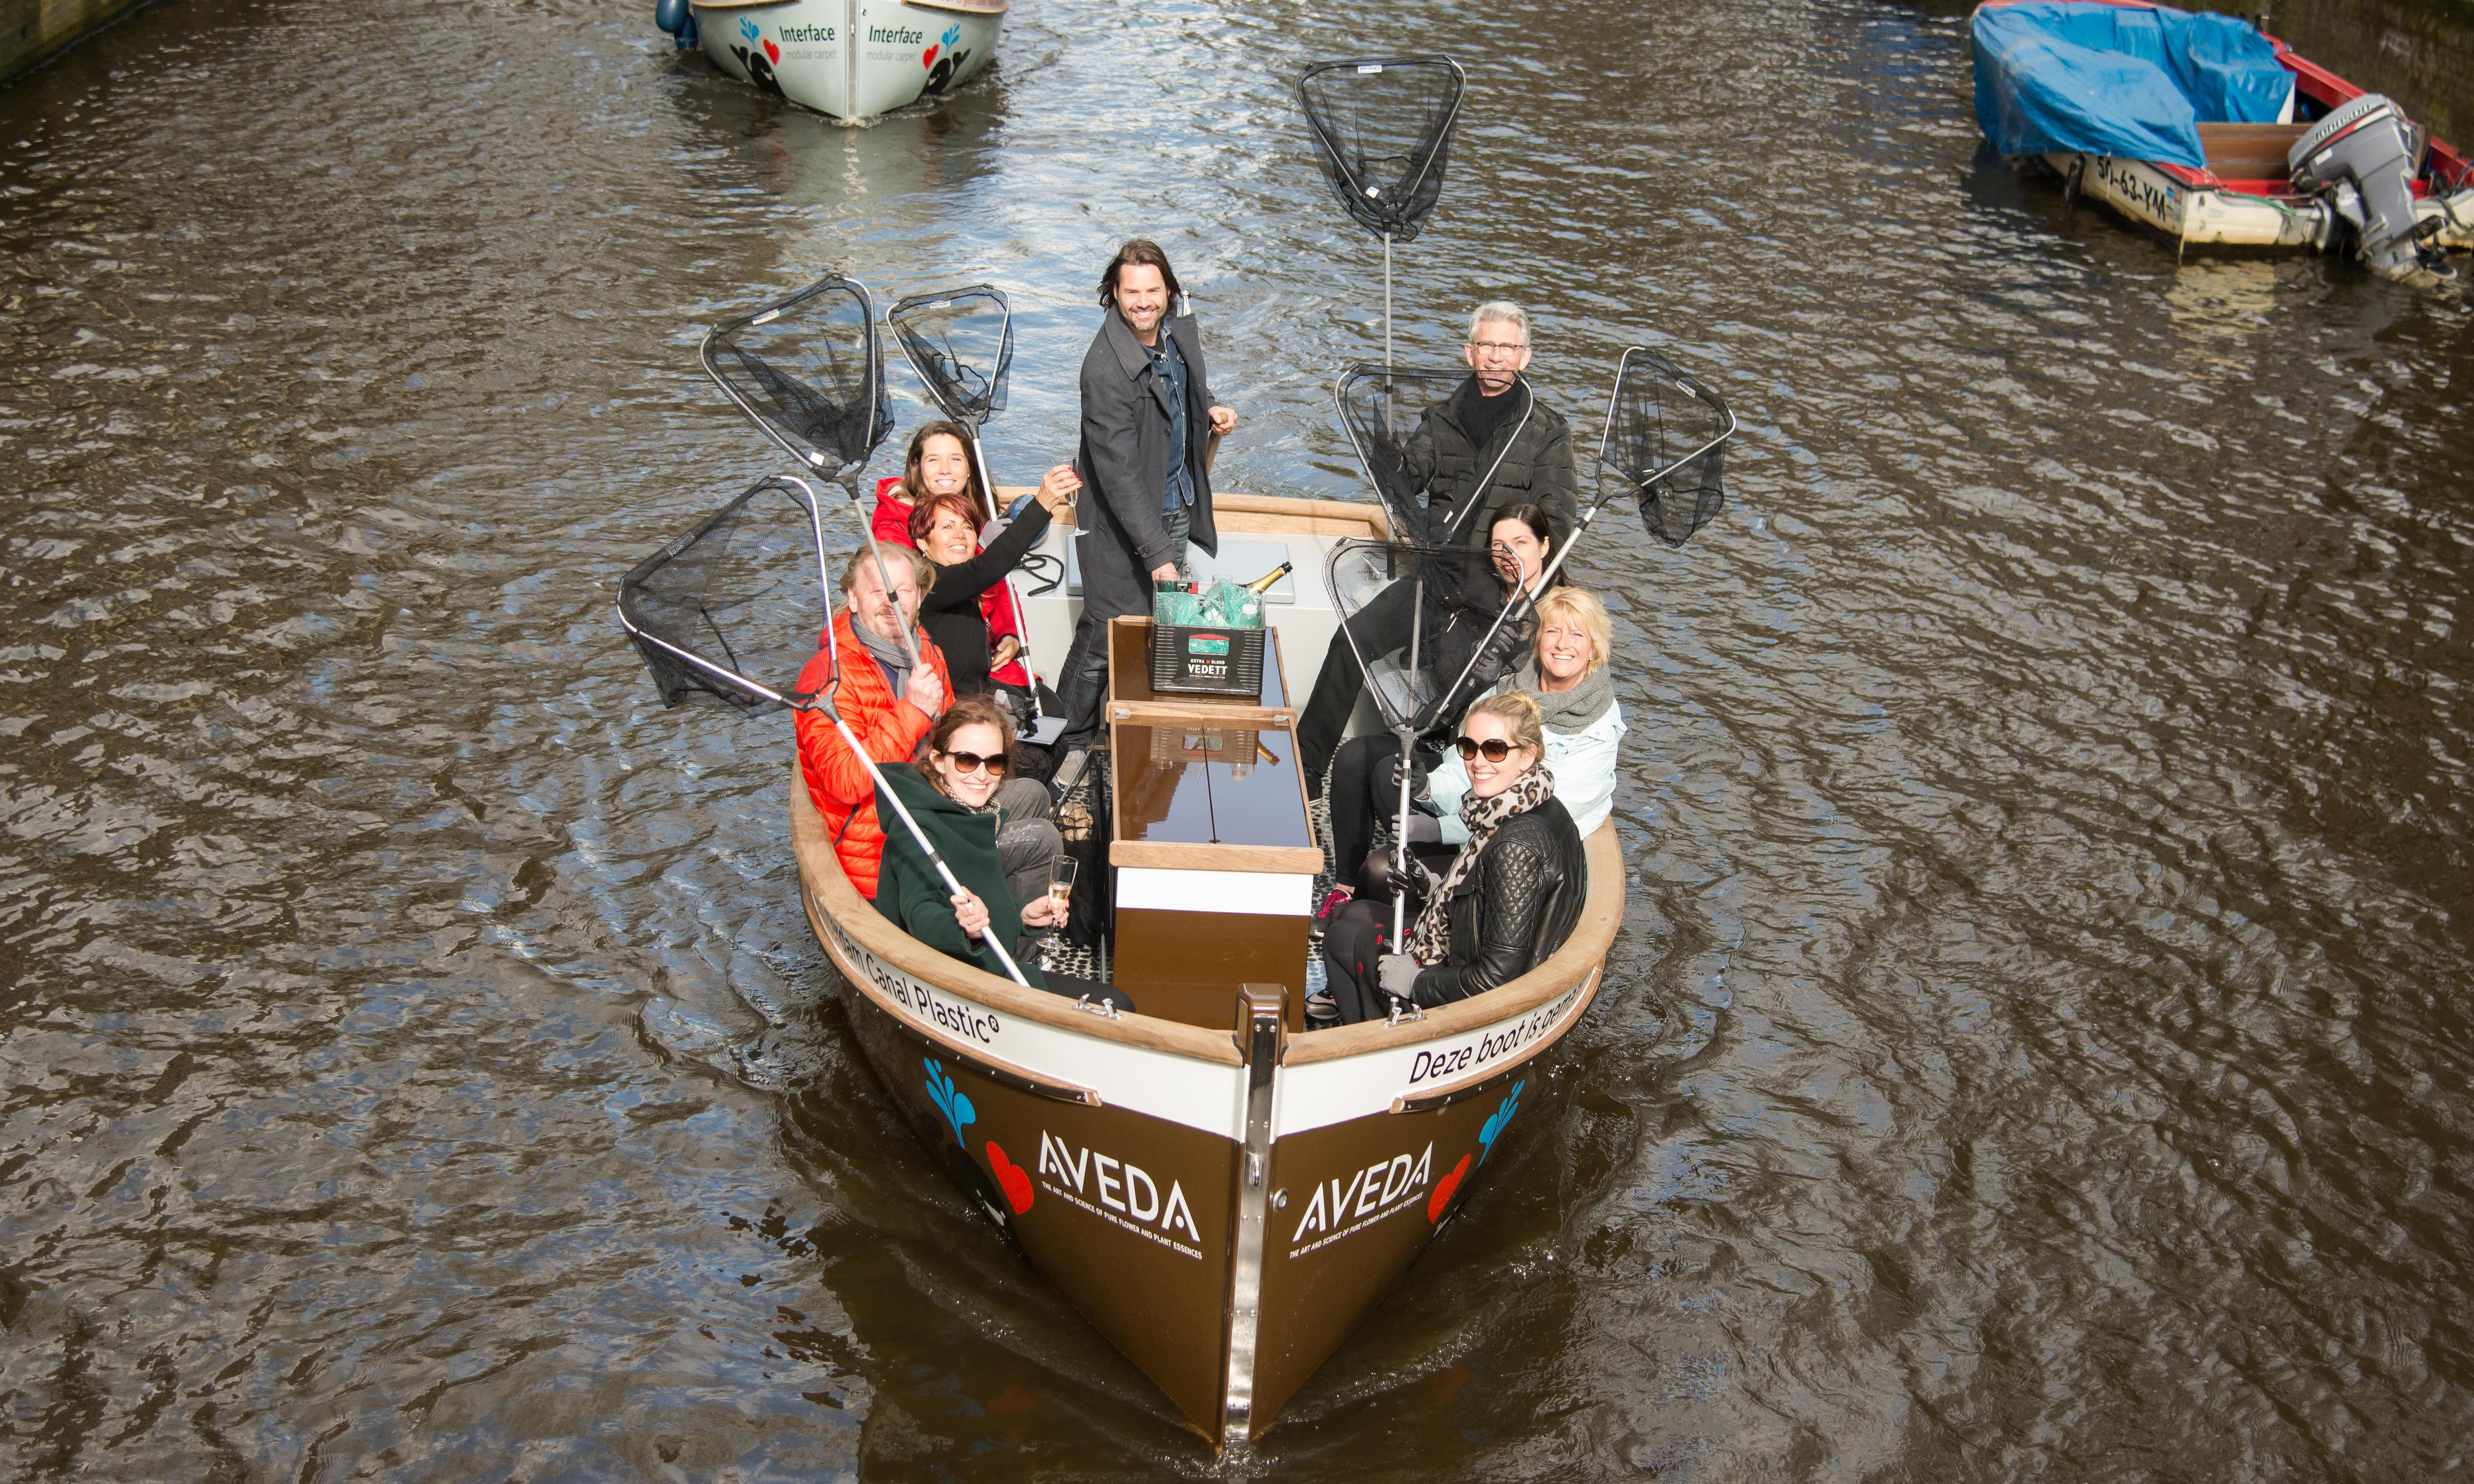 Fishing for plastic: the Amsterdam canal tour with a difference